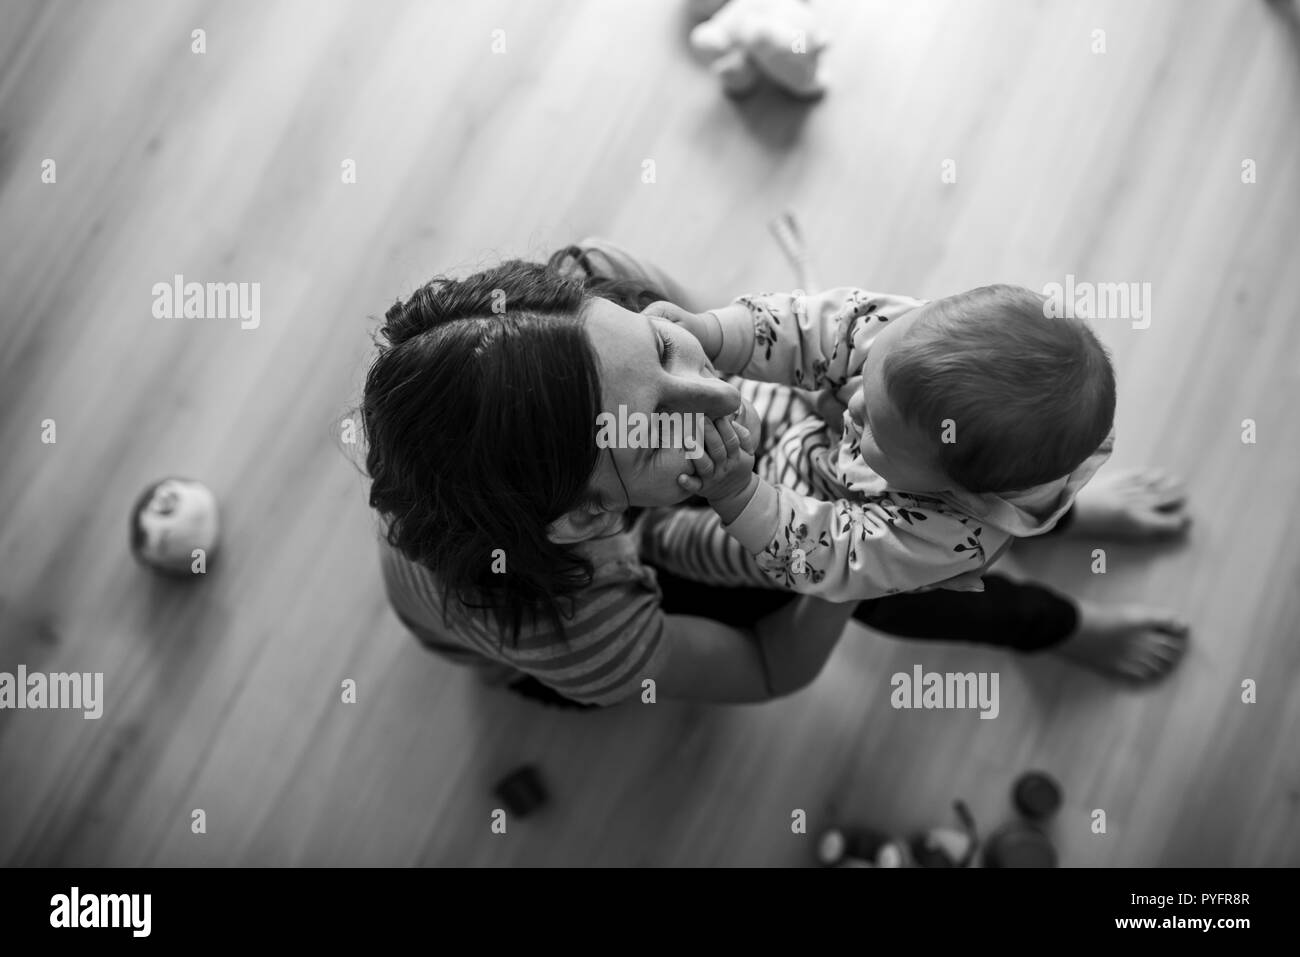 Top view of young mother sitting on living room floor lovingly playing with her baby daughter. Monochrome image. - Stock Image